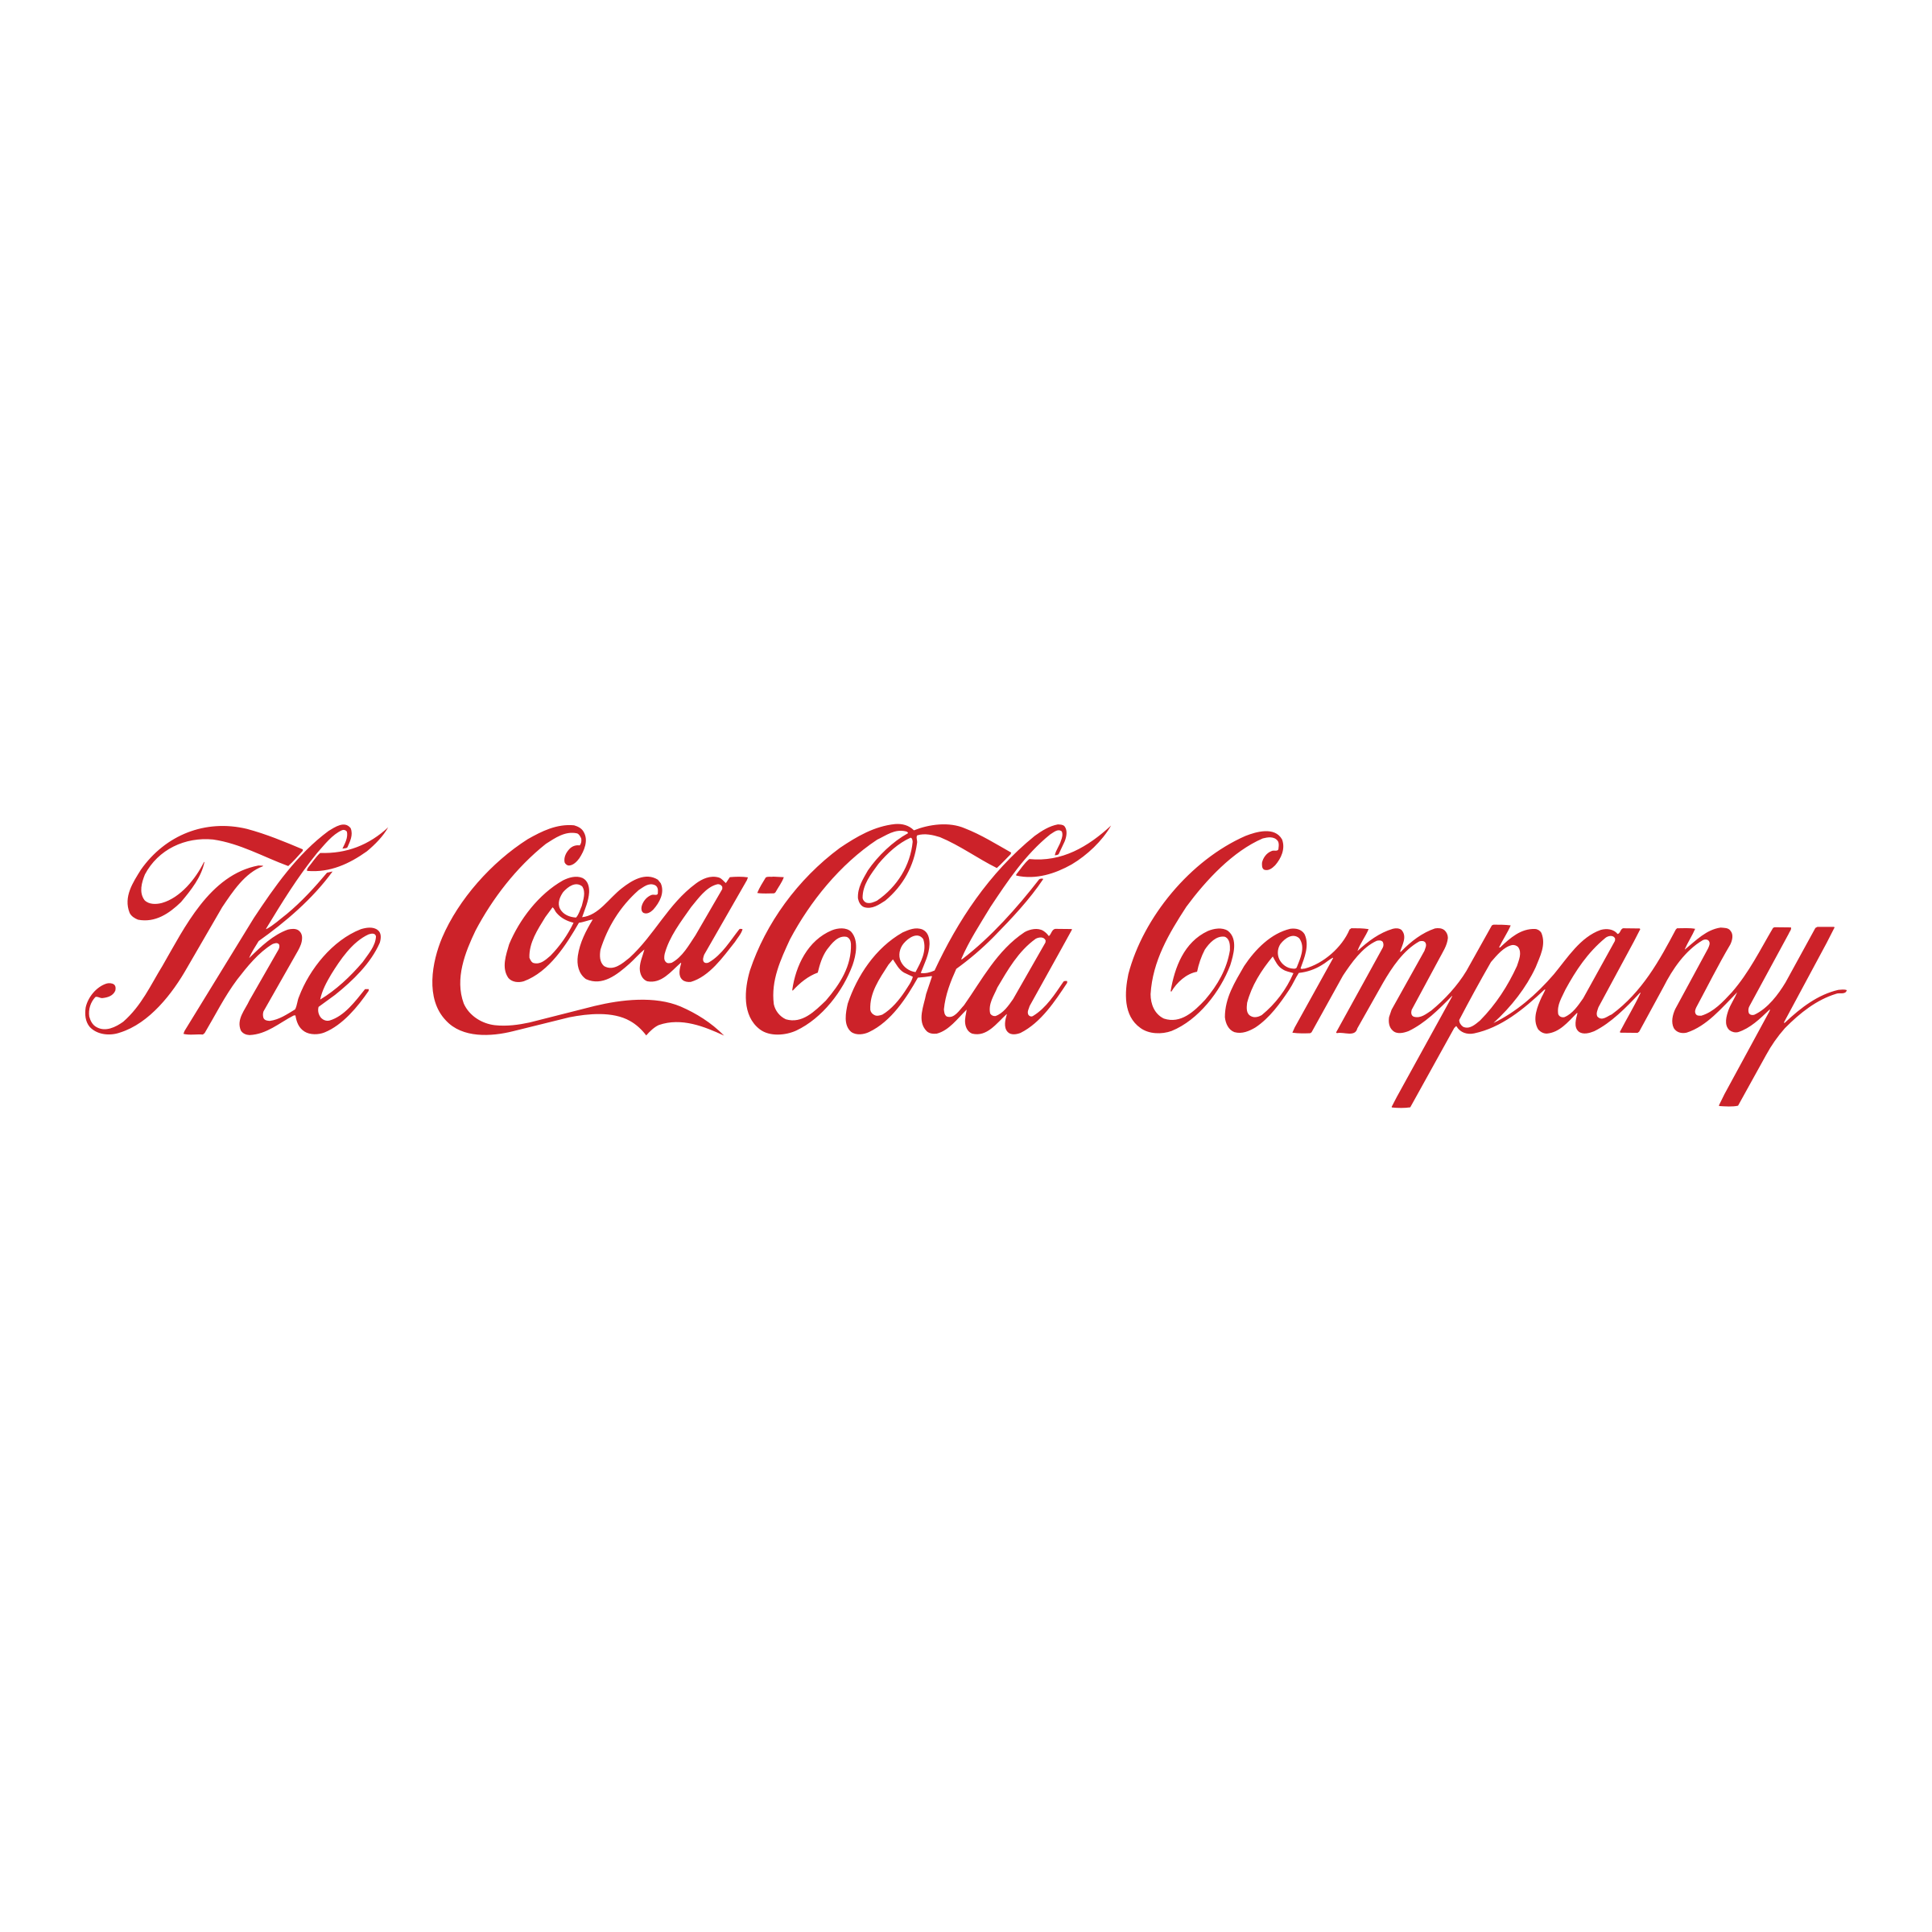 the coca cola company logo png transparent amp svg vector